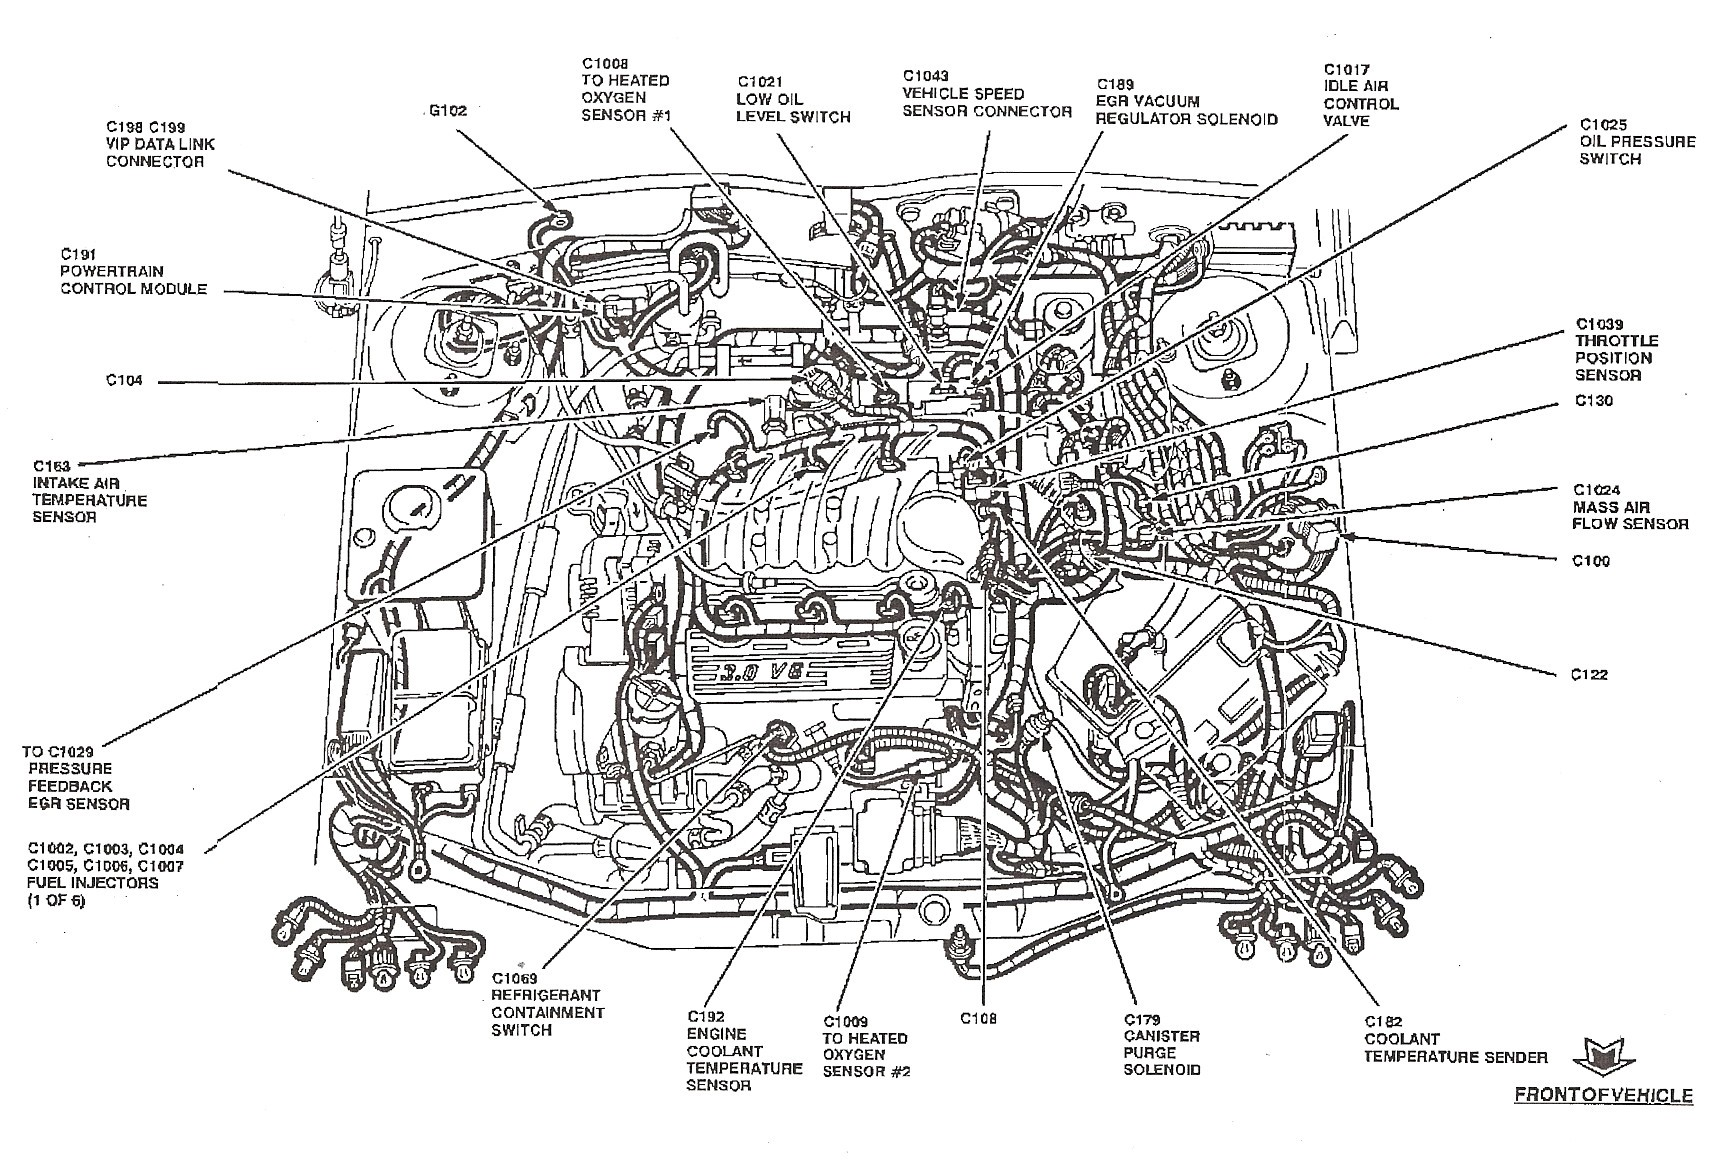 1987 454 Chevy Engine Diagram